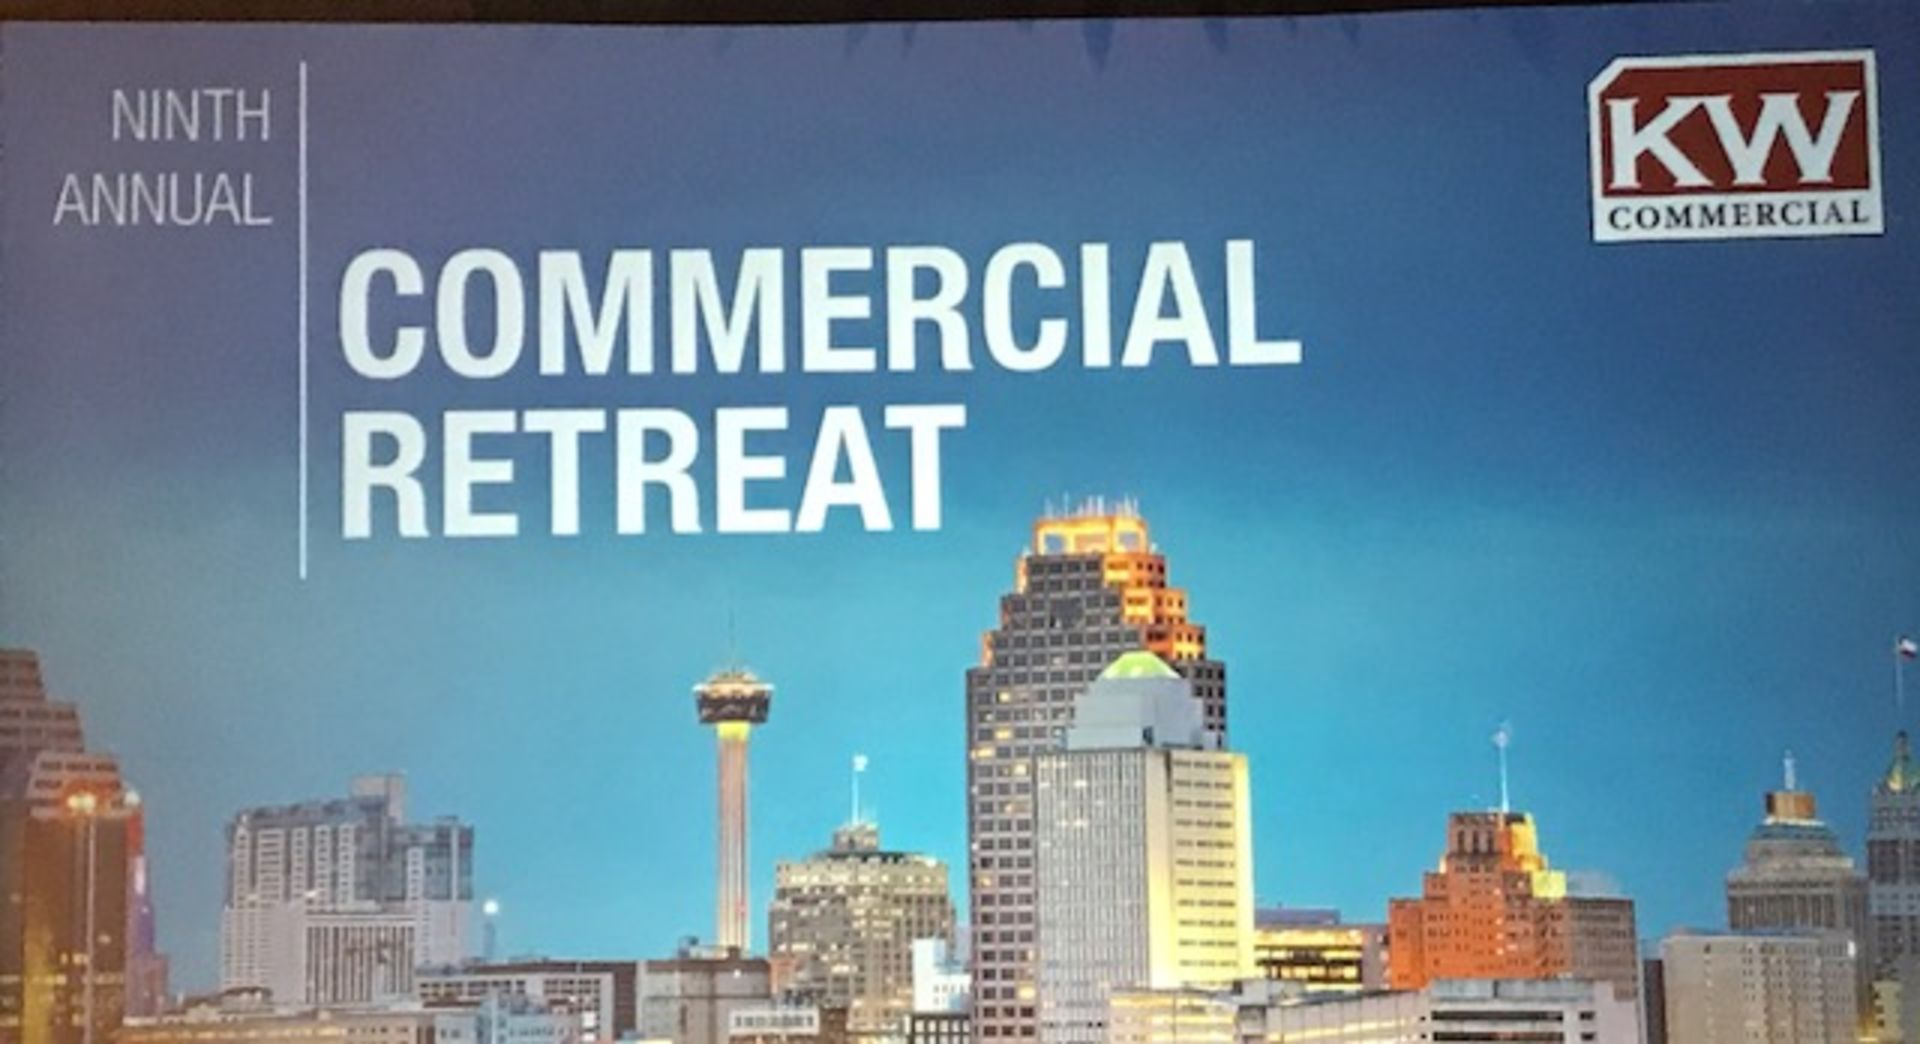 2018 KW Commercial Retreat! – Growth and Knowledge